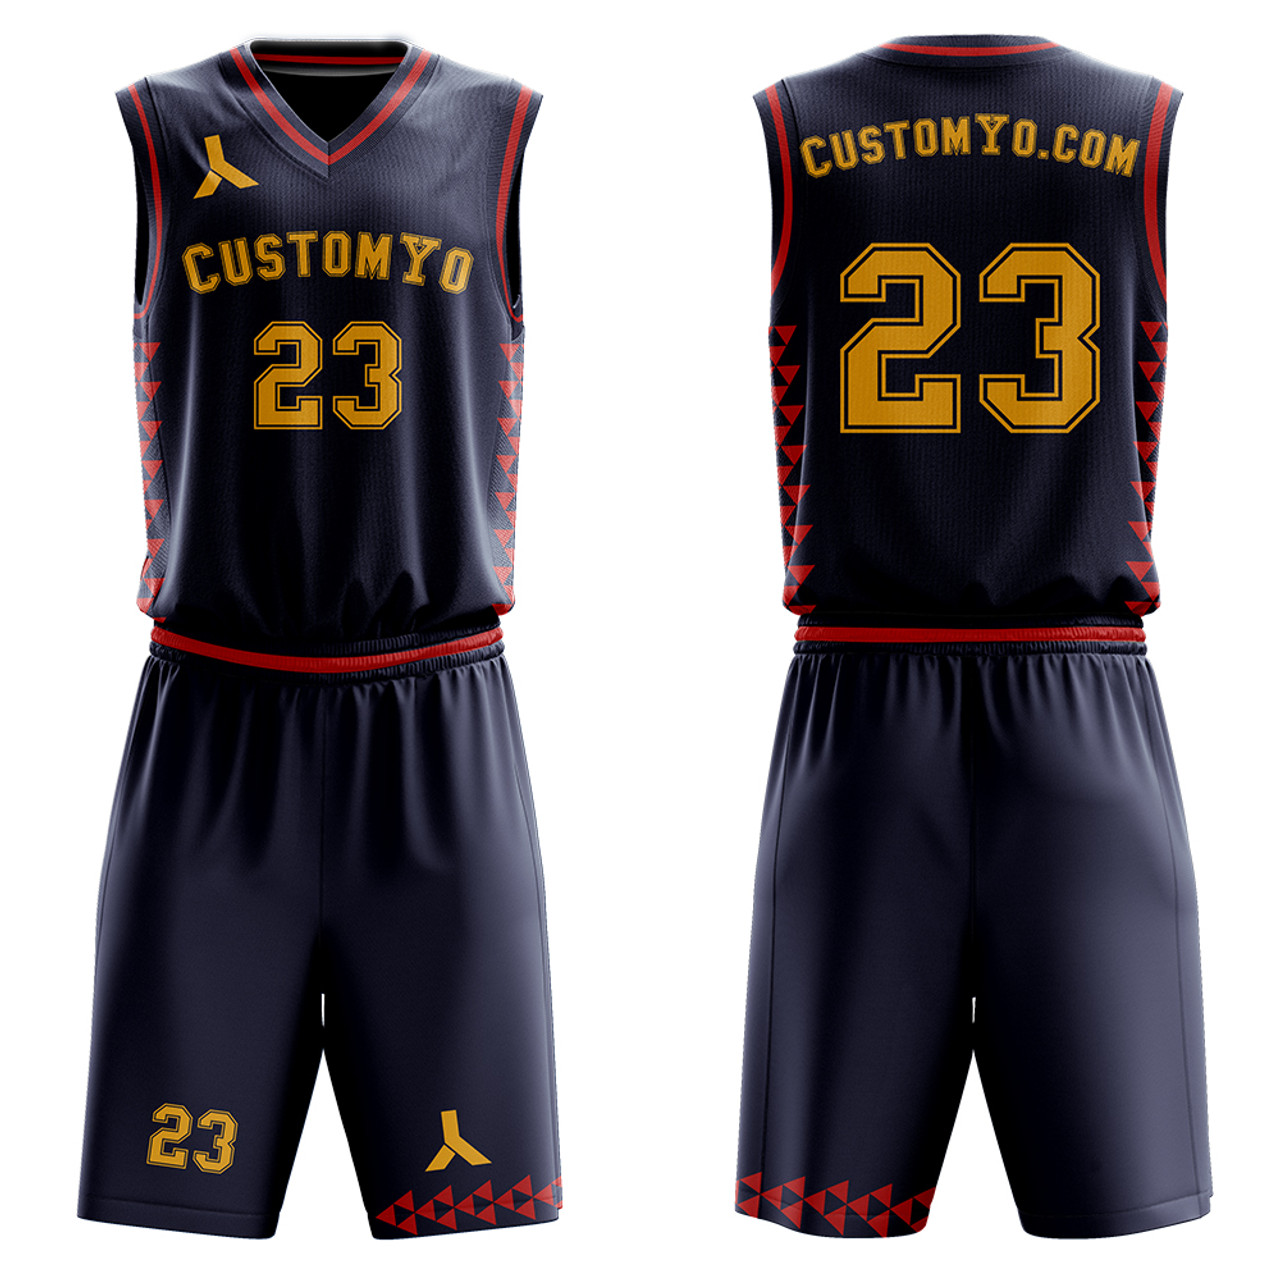 cheap Custom team basketball jerseys for men youth kids sports uniforms free add name, logo, number